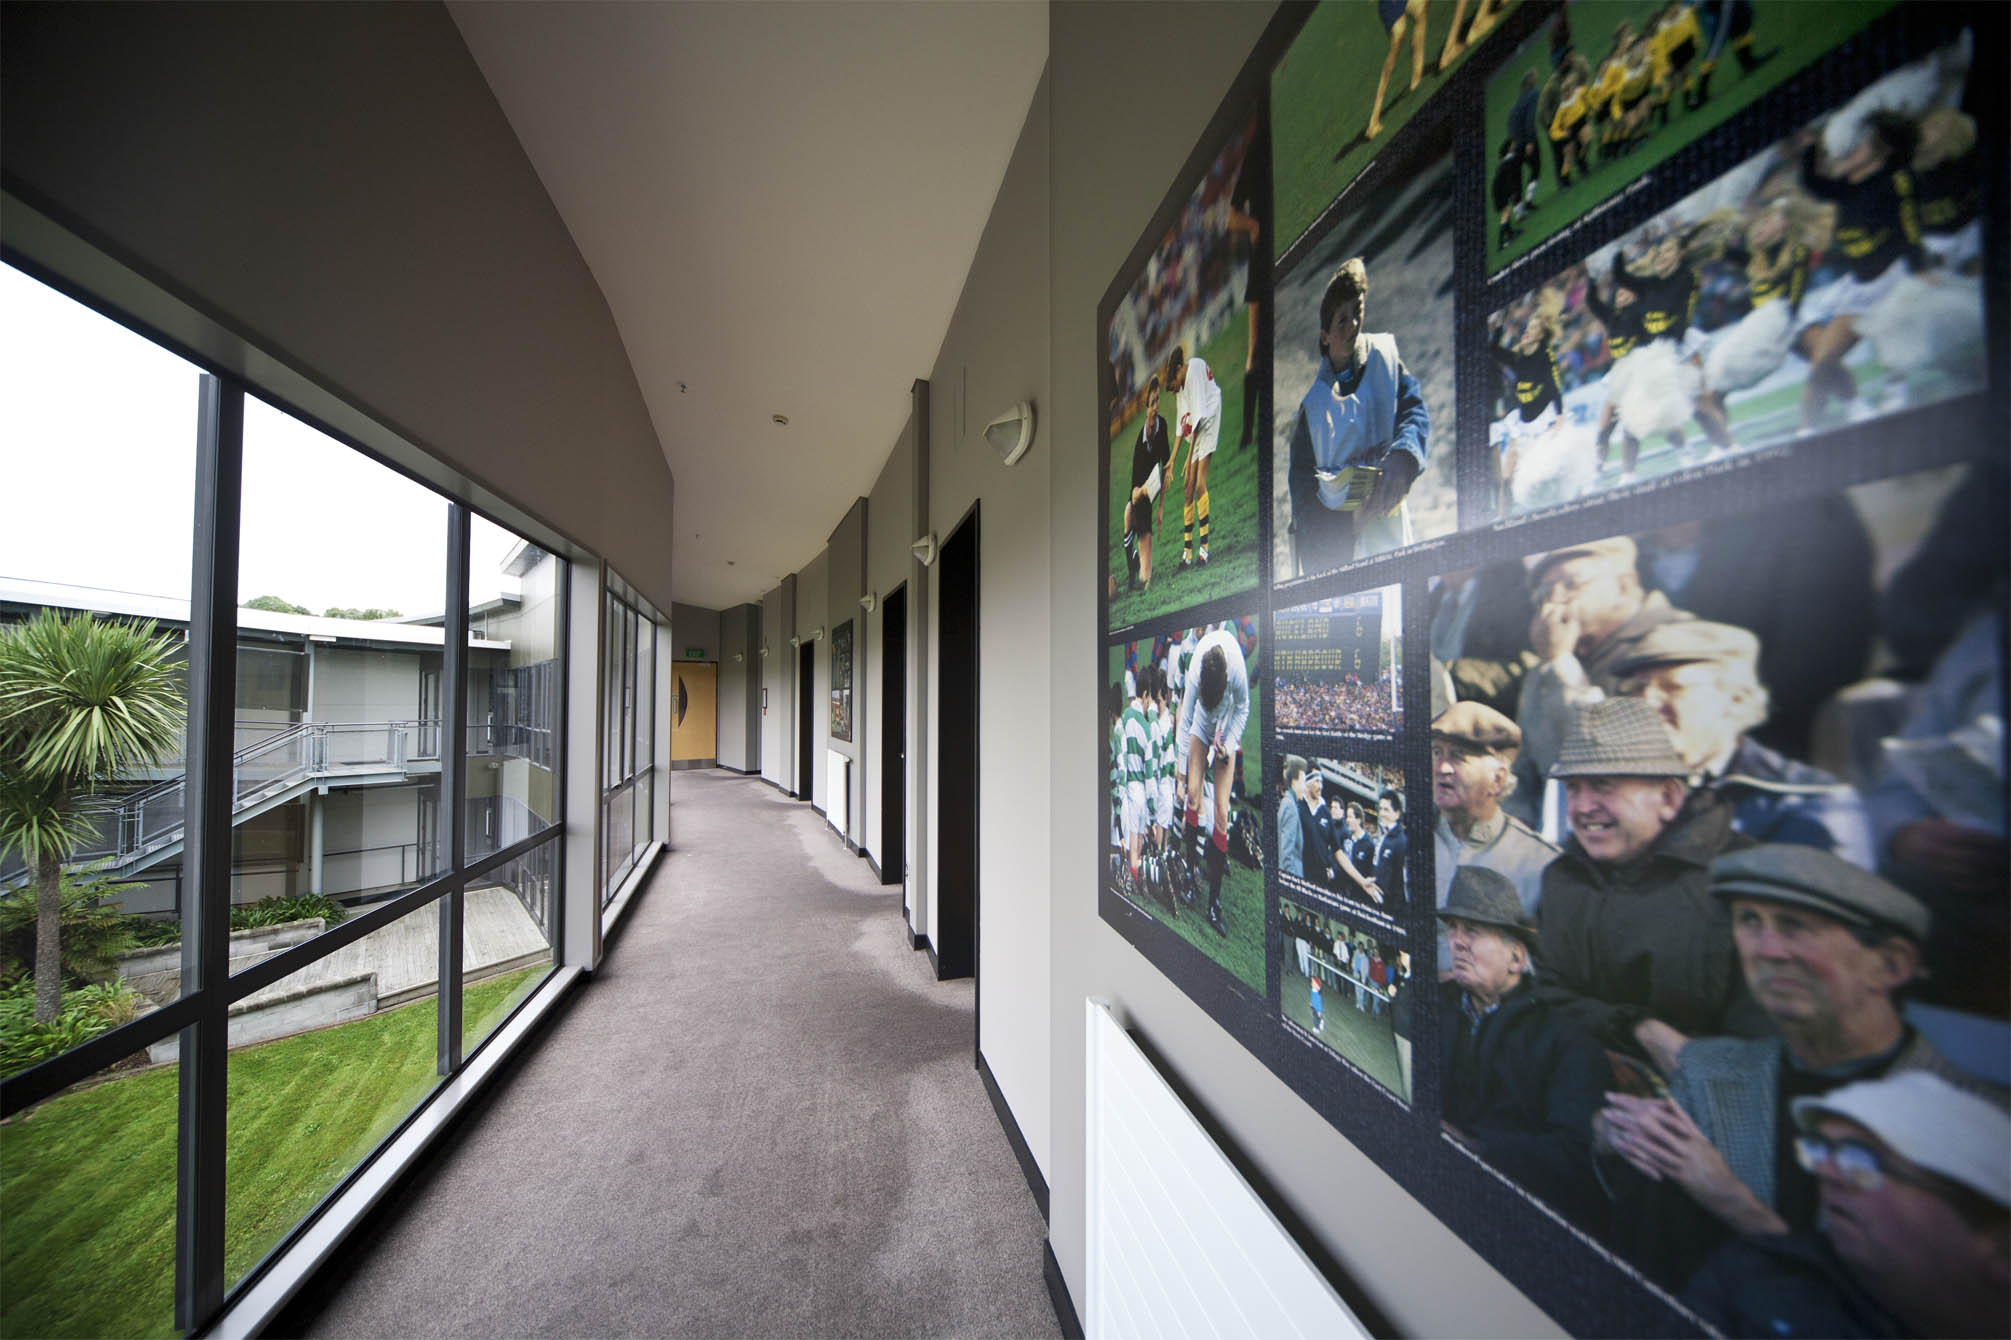 The hallways of the accommodation block features various pieces of rugby art and history